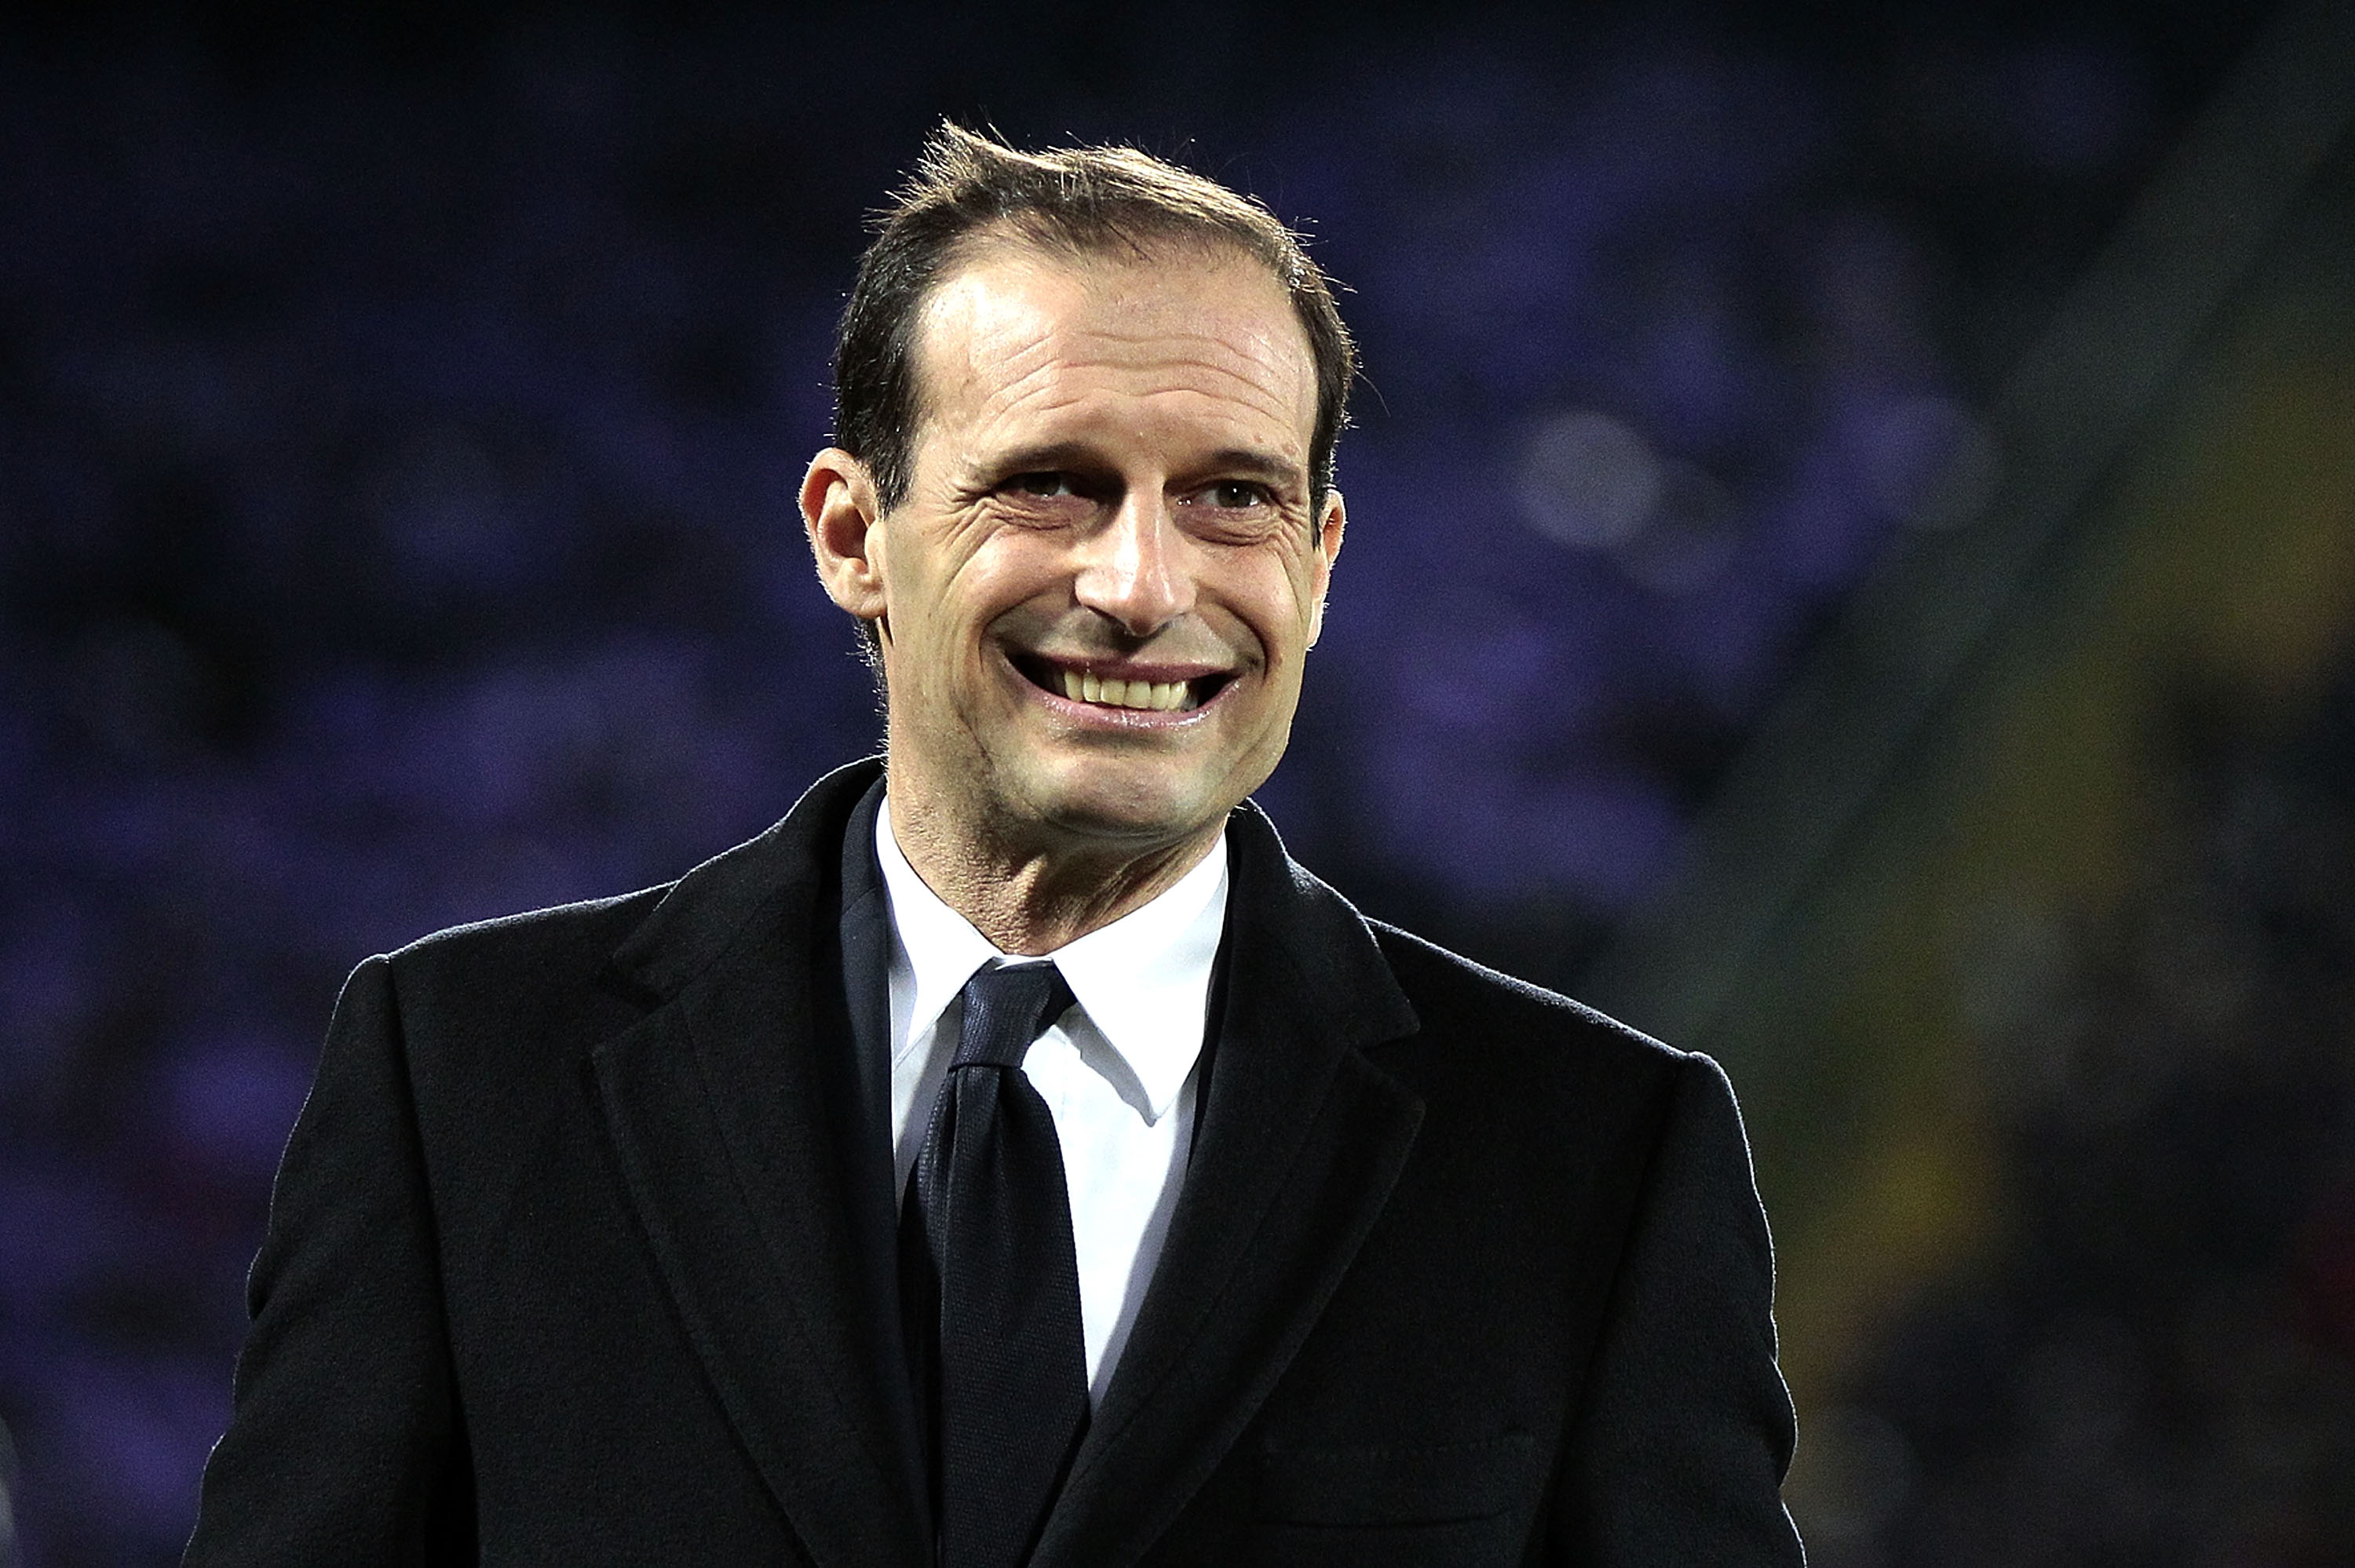 Arsenal legend Jens Lehmann aims dig at Juventus boss Massimiliano Allegri